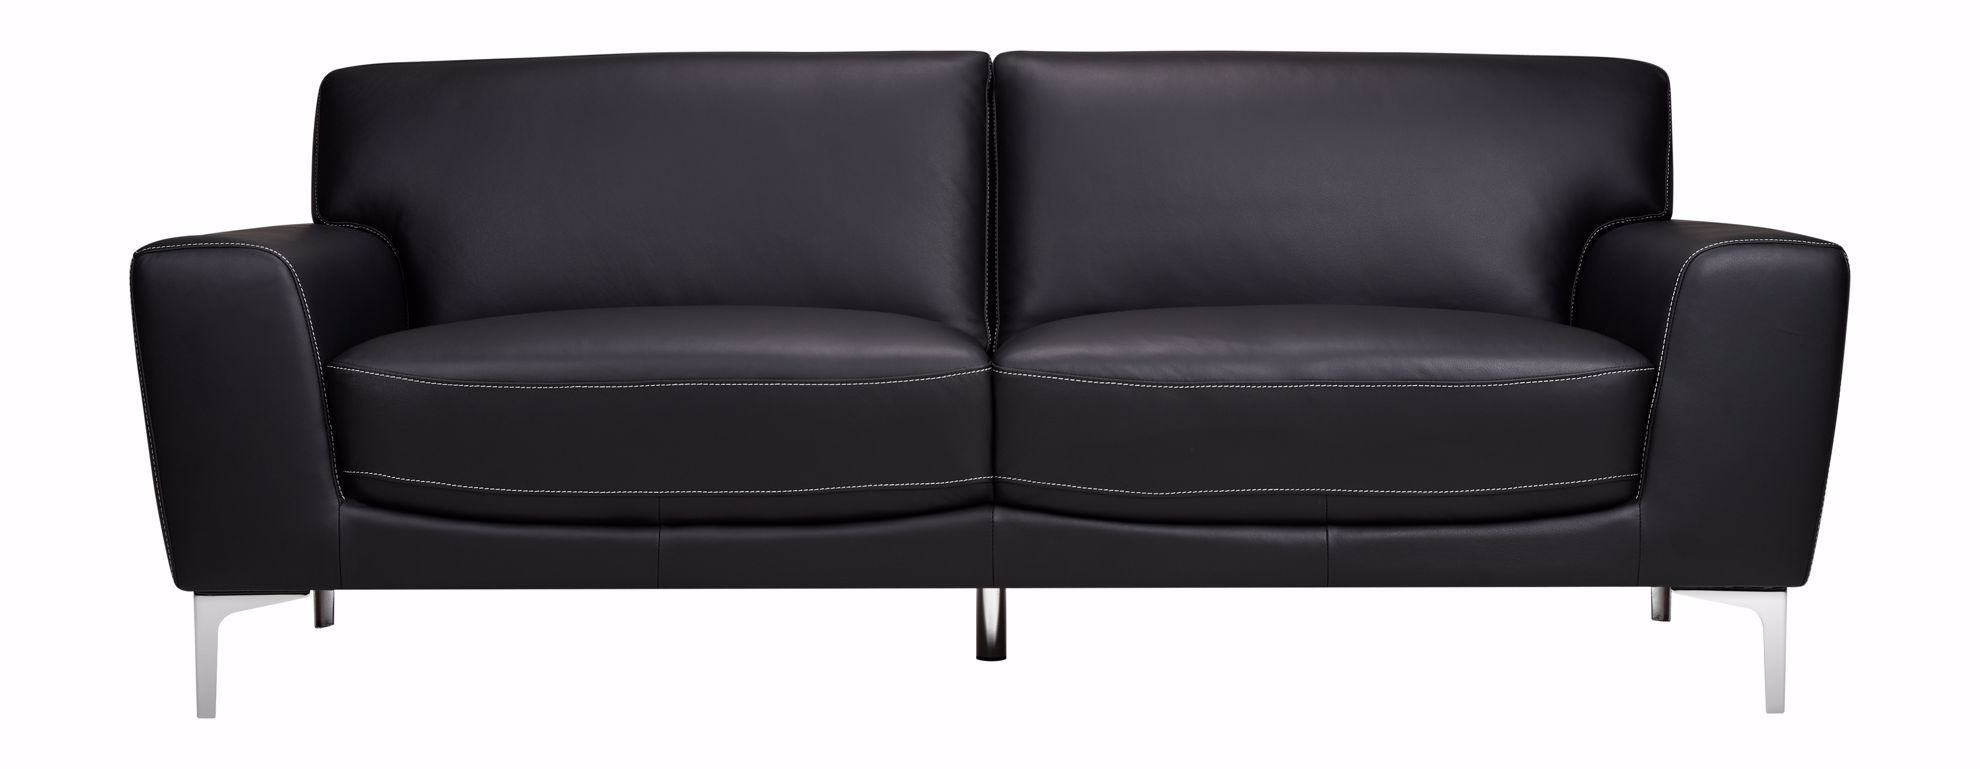 Picture of Carrara Black Leather Sofa